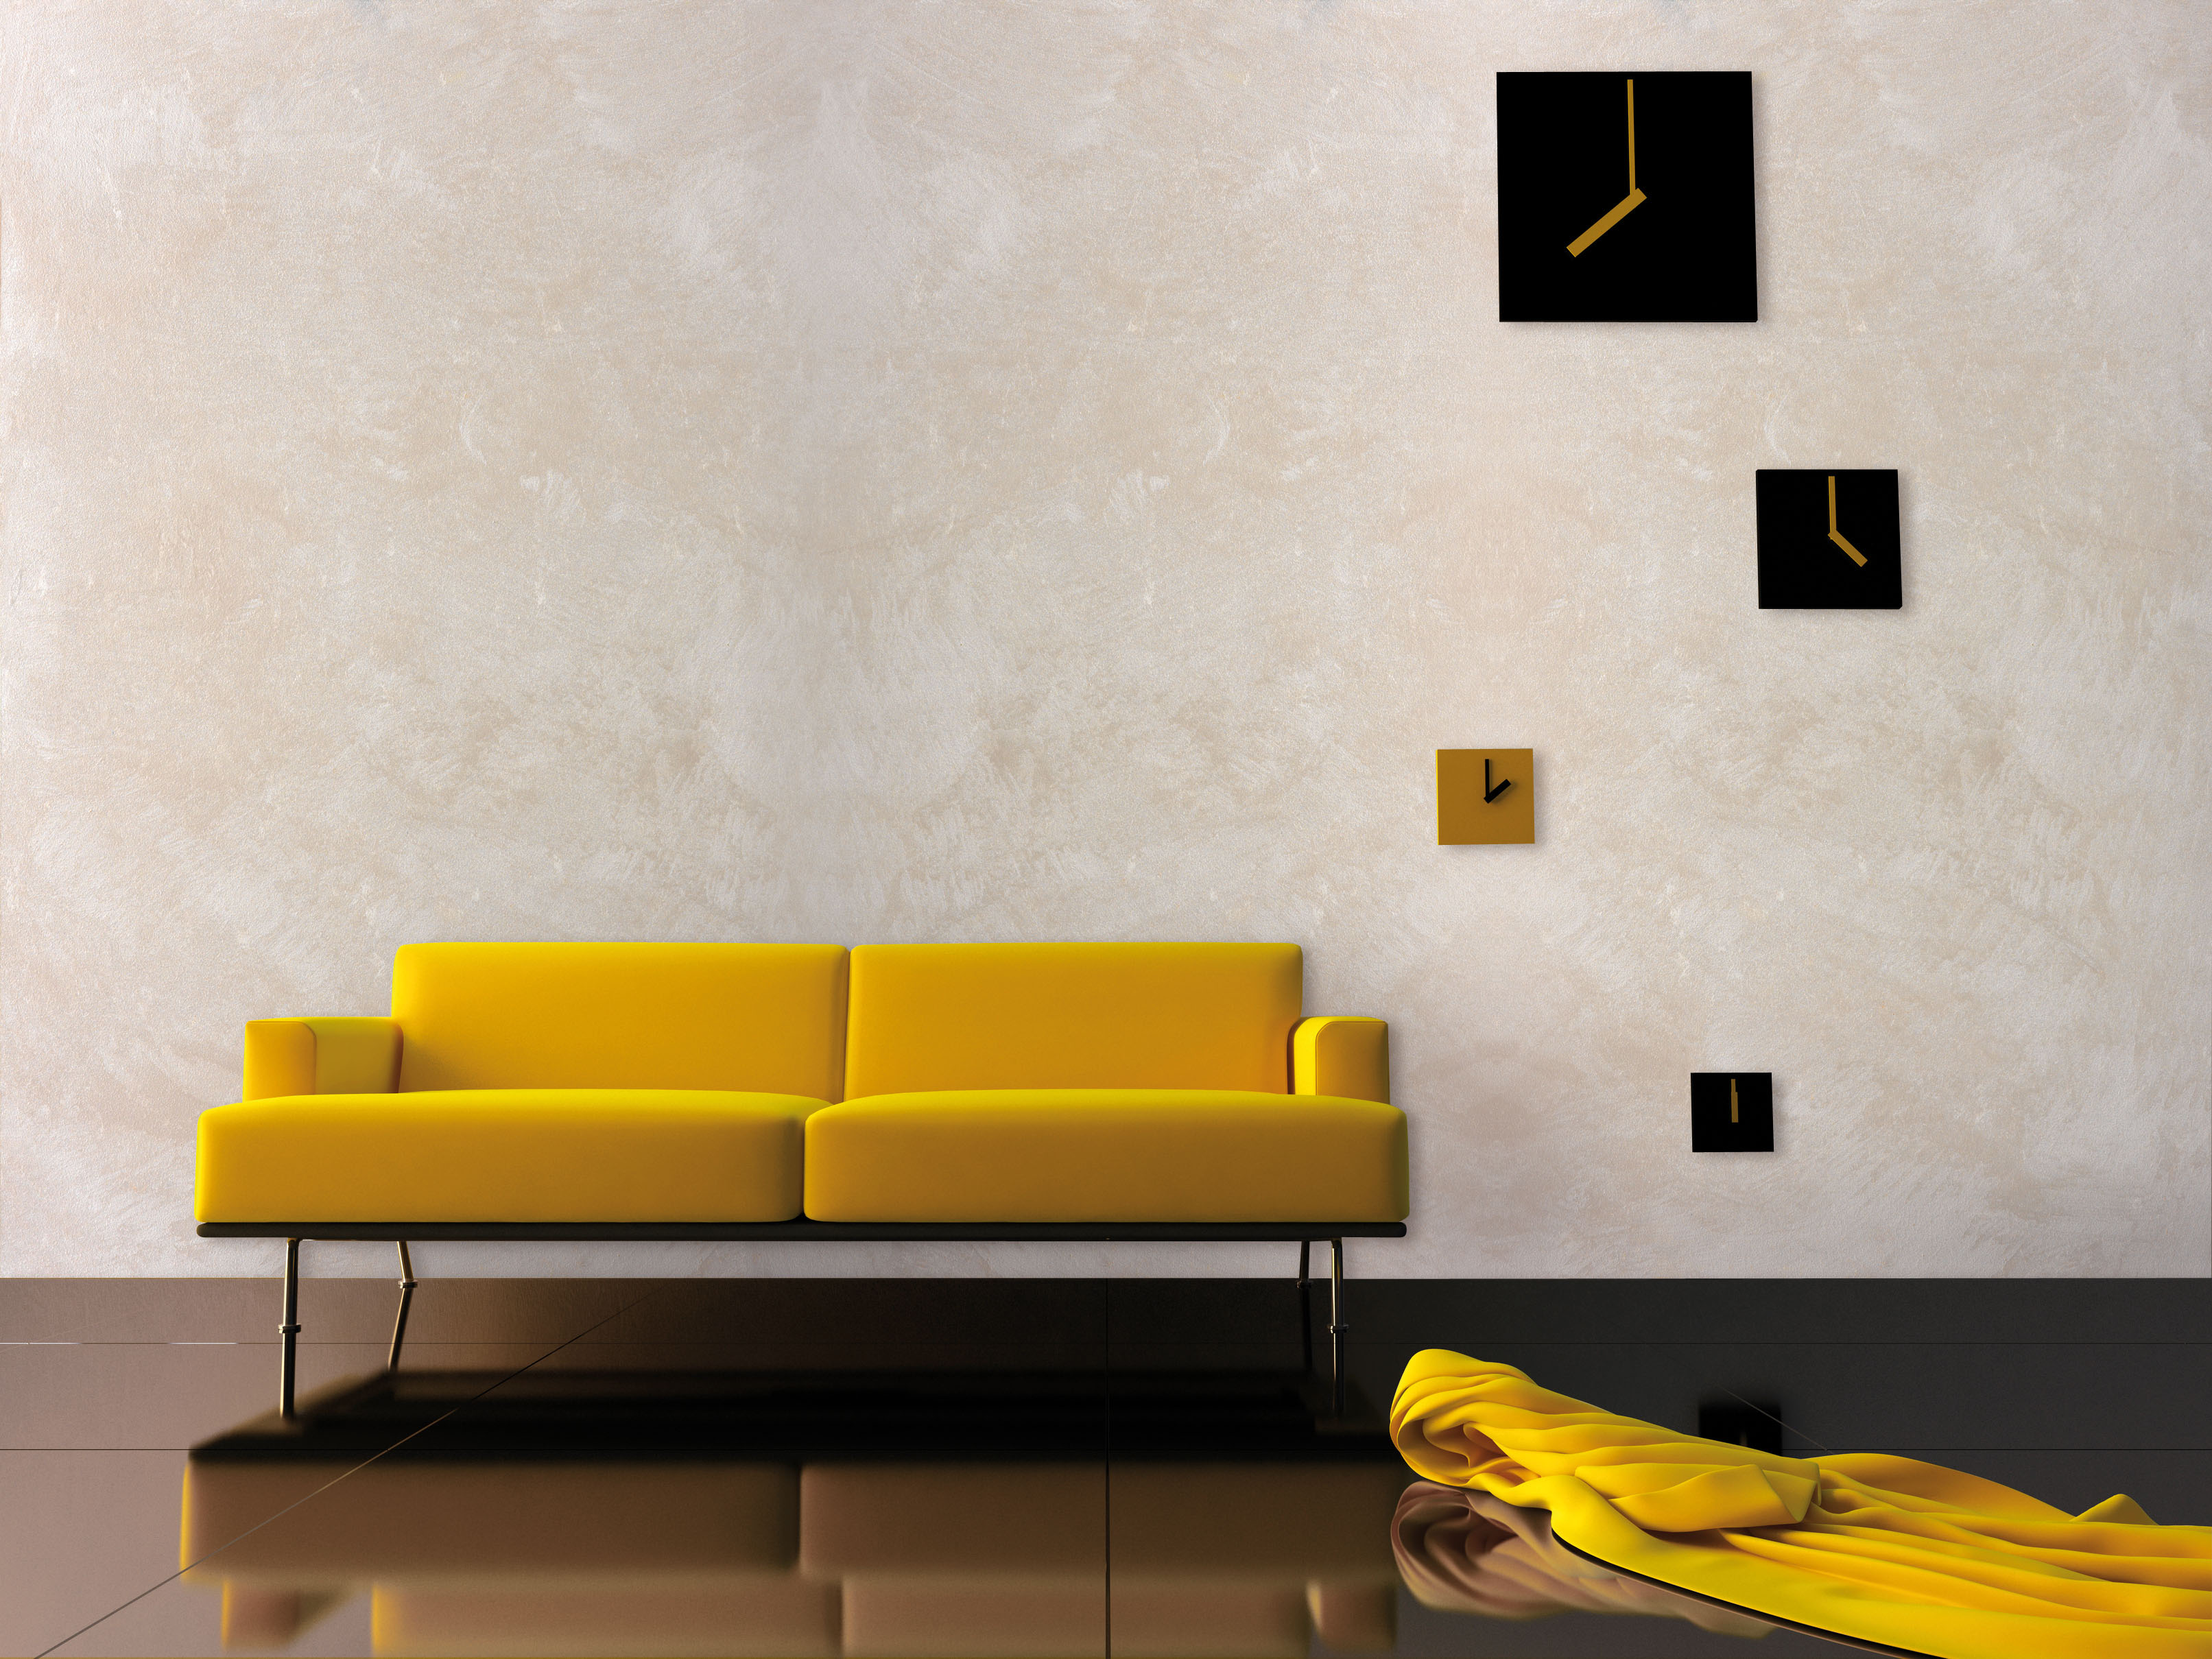 Interior Yello velvet, sofa and time zone clock